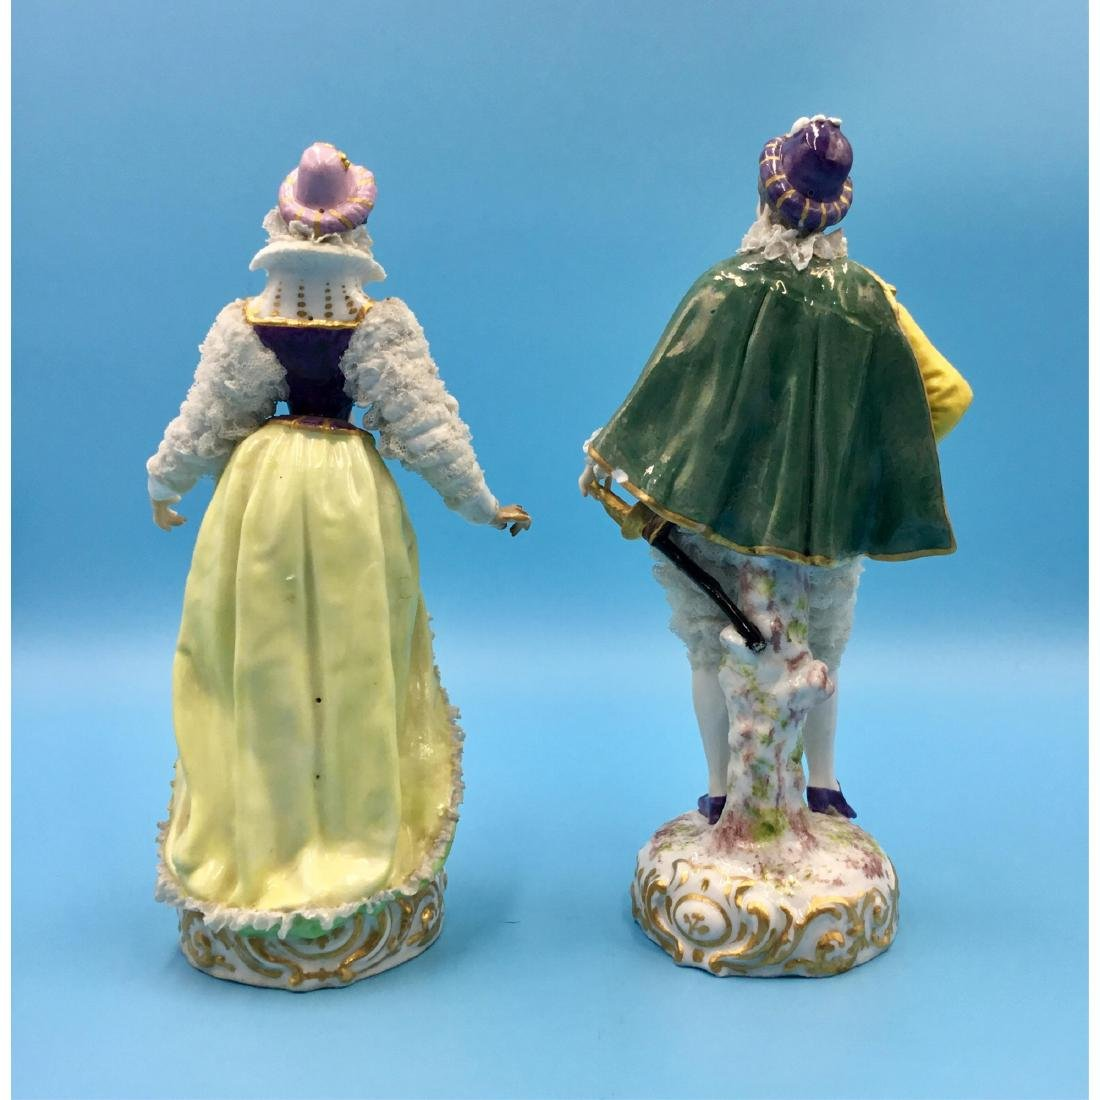 PAIR OF ACHILLE BLOCH FRENCH PORCELAIN FIGURINES - 3